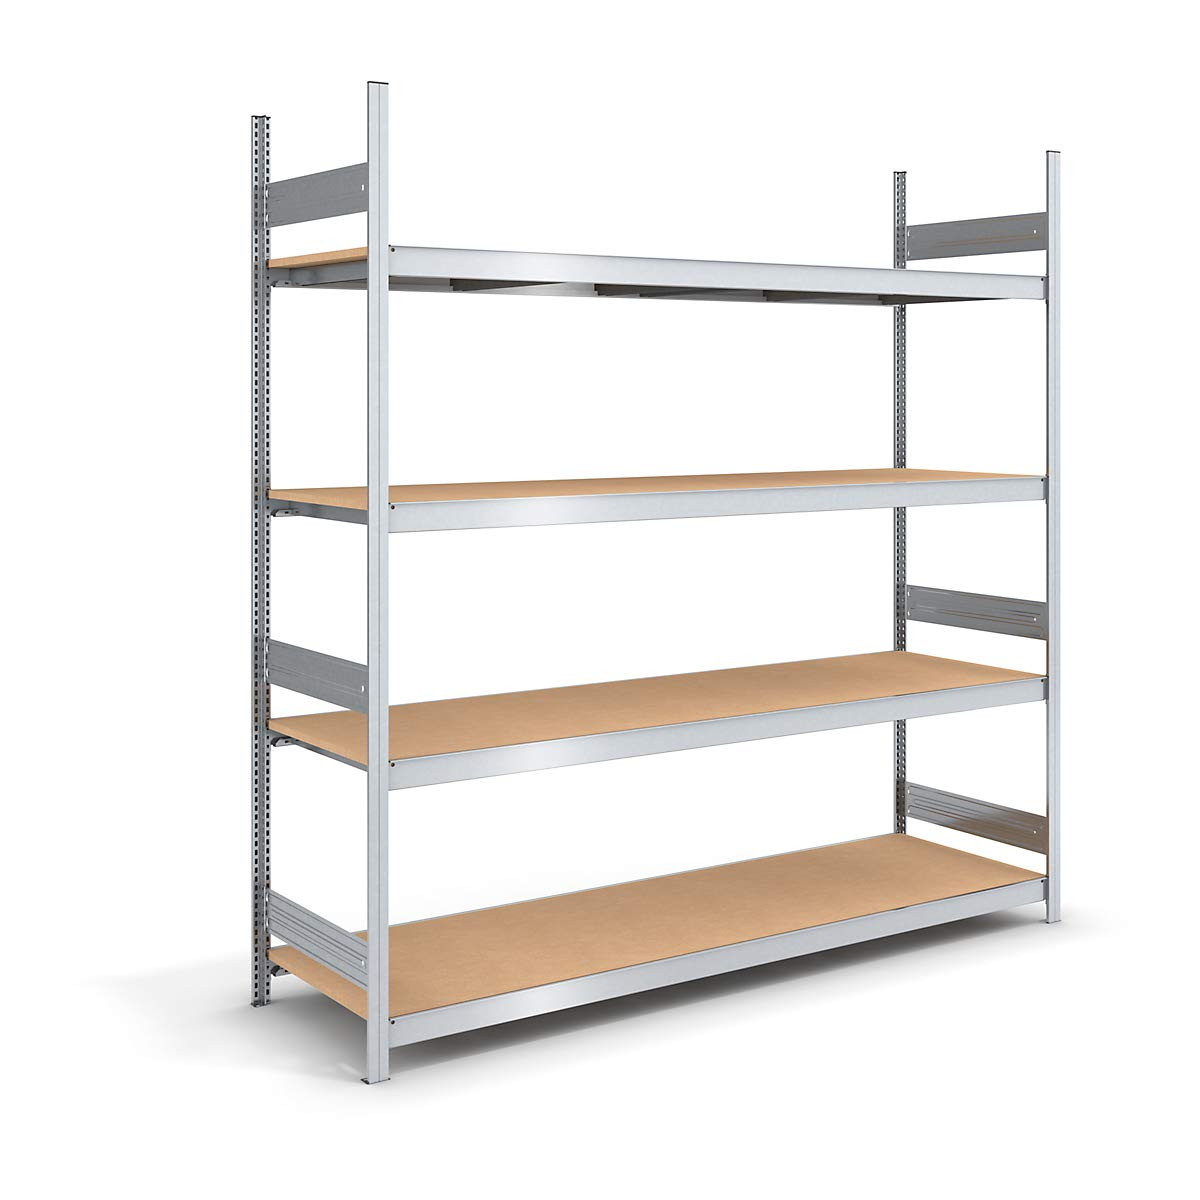 Stacking Shelf Wide With Shelves - Chipboard 2500 Mm, Width 2250 (2